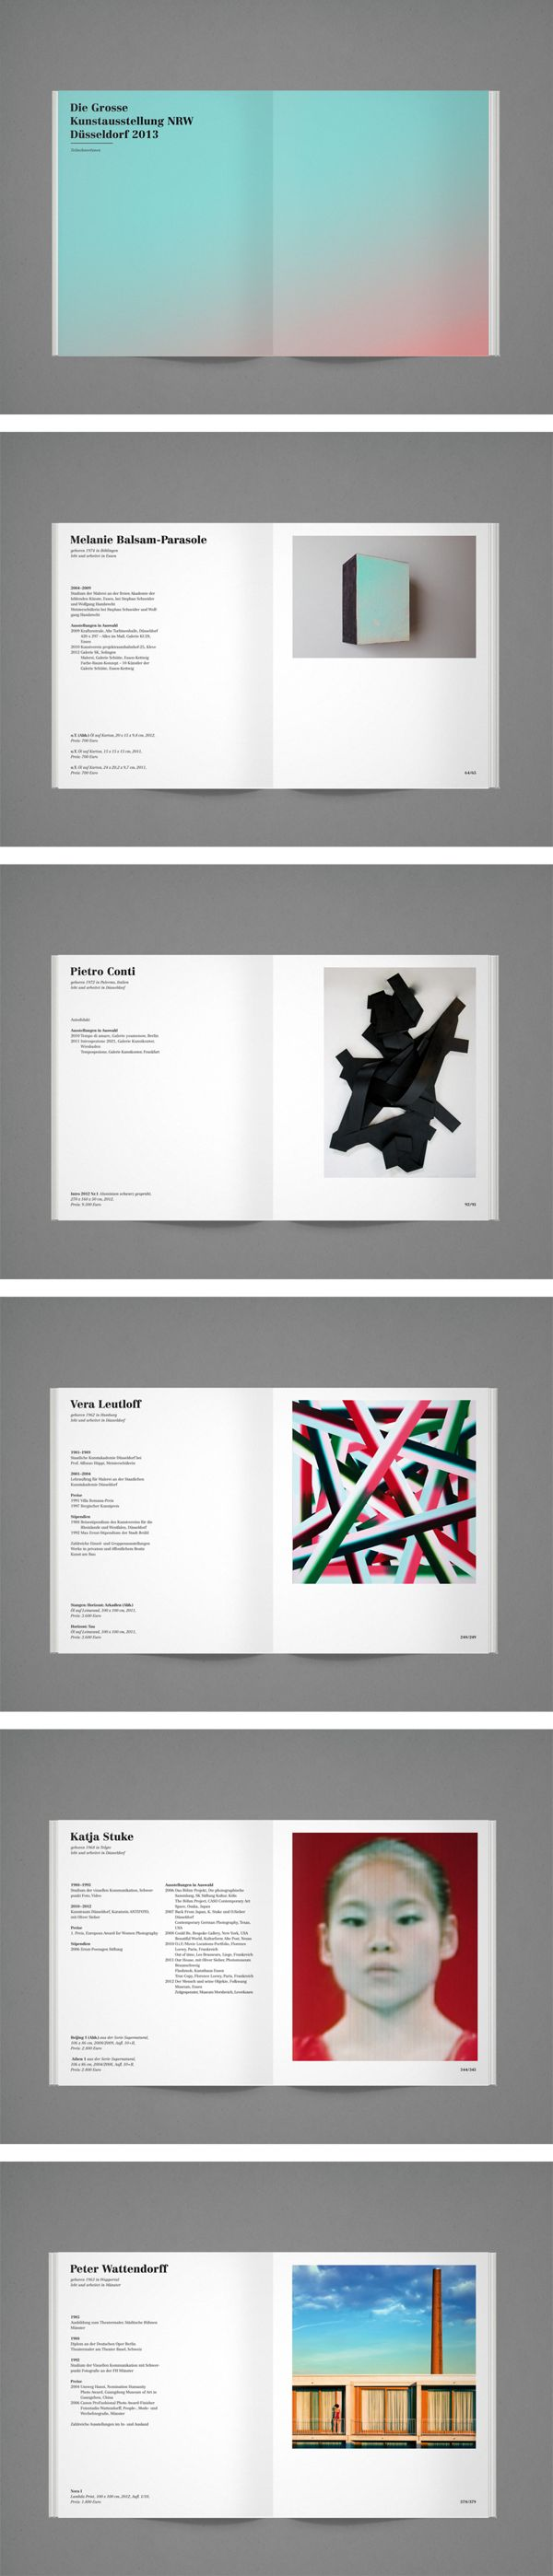 DIE GROSSE Kunstausstellung NRW - Exhibition Catalogue on Behance